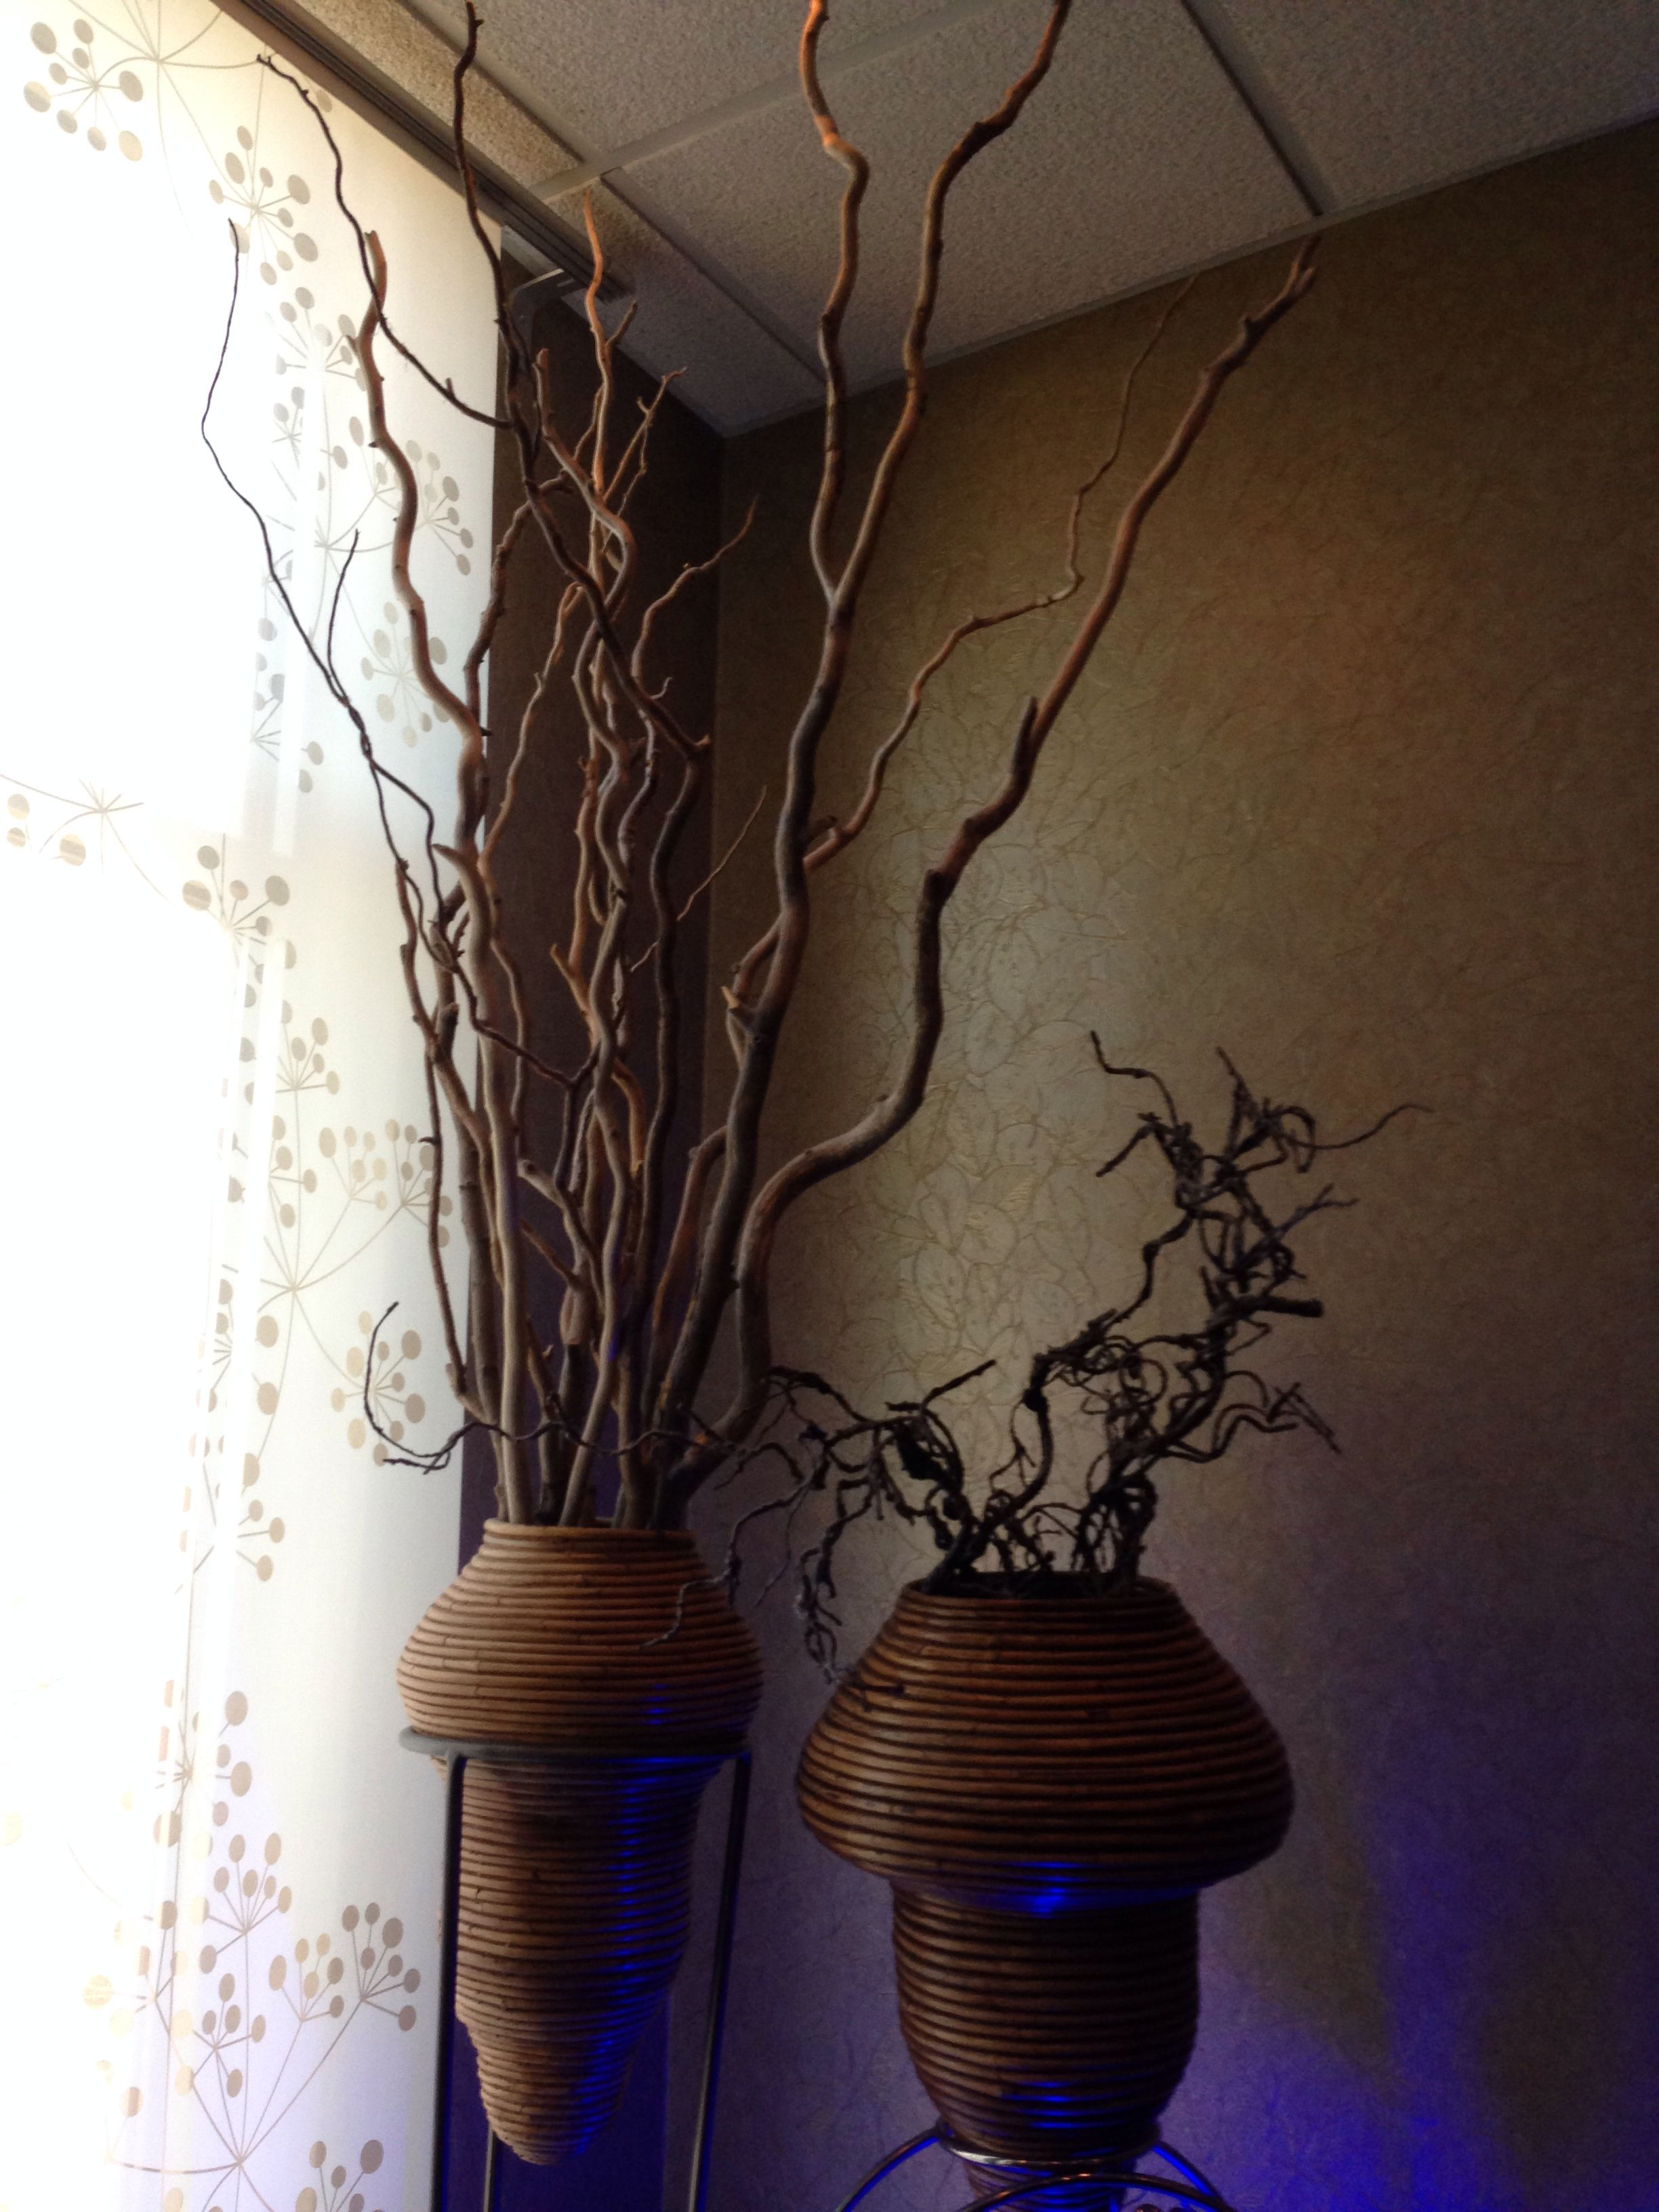 Decorative vases. Add twisted willow branches for a rustic touch.